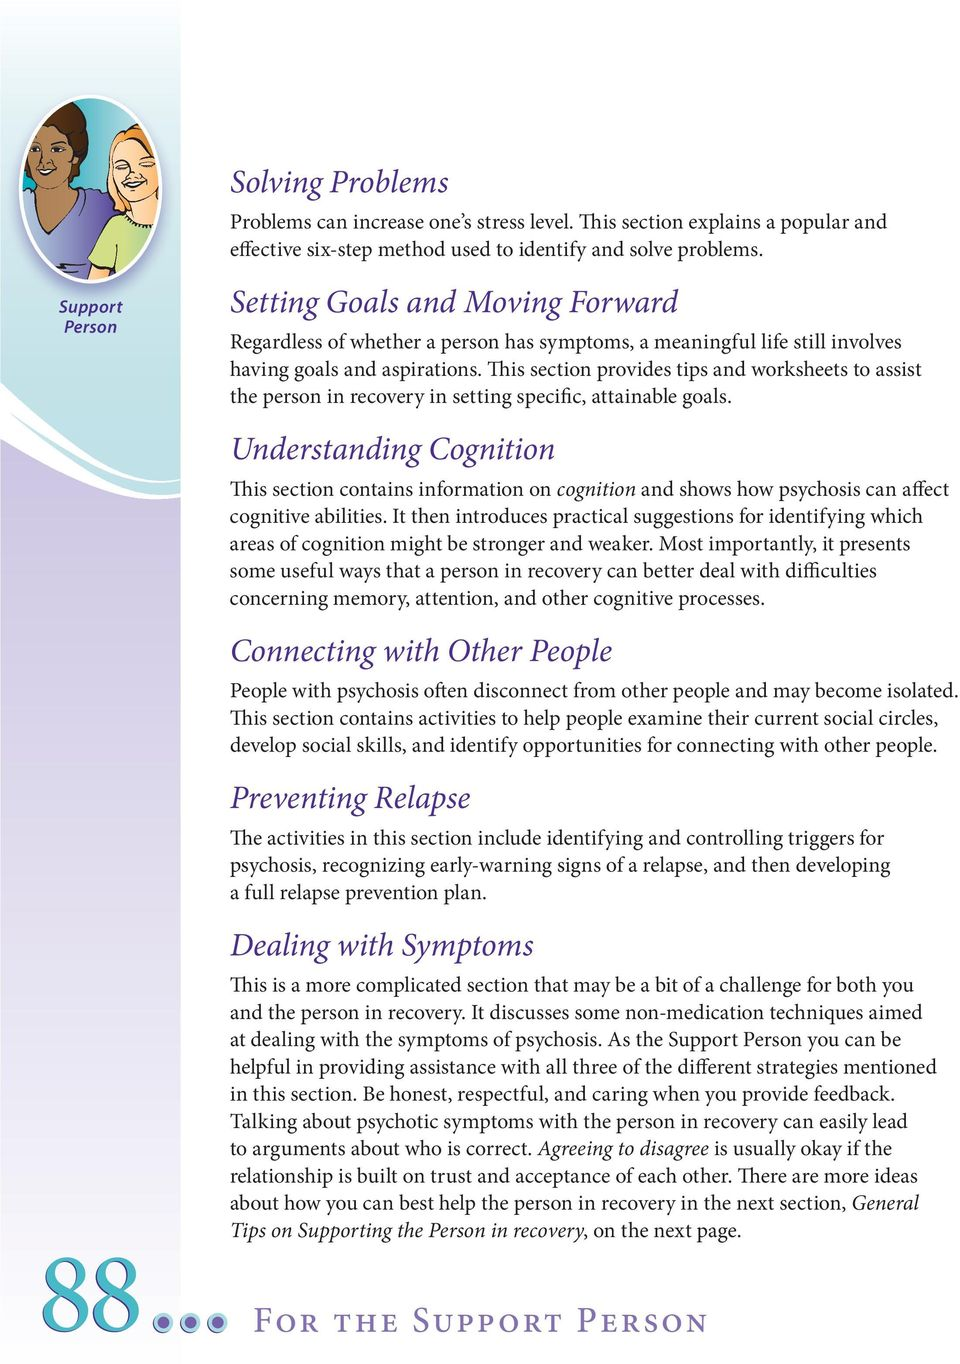 This section provides tips and worksheets to assist the person in recovery in setting specific, attainable goals.